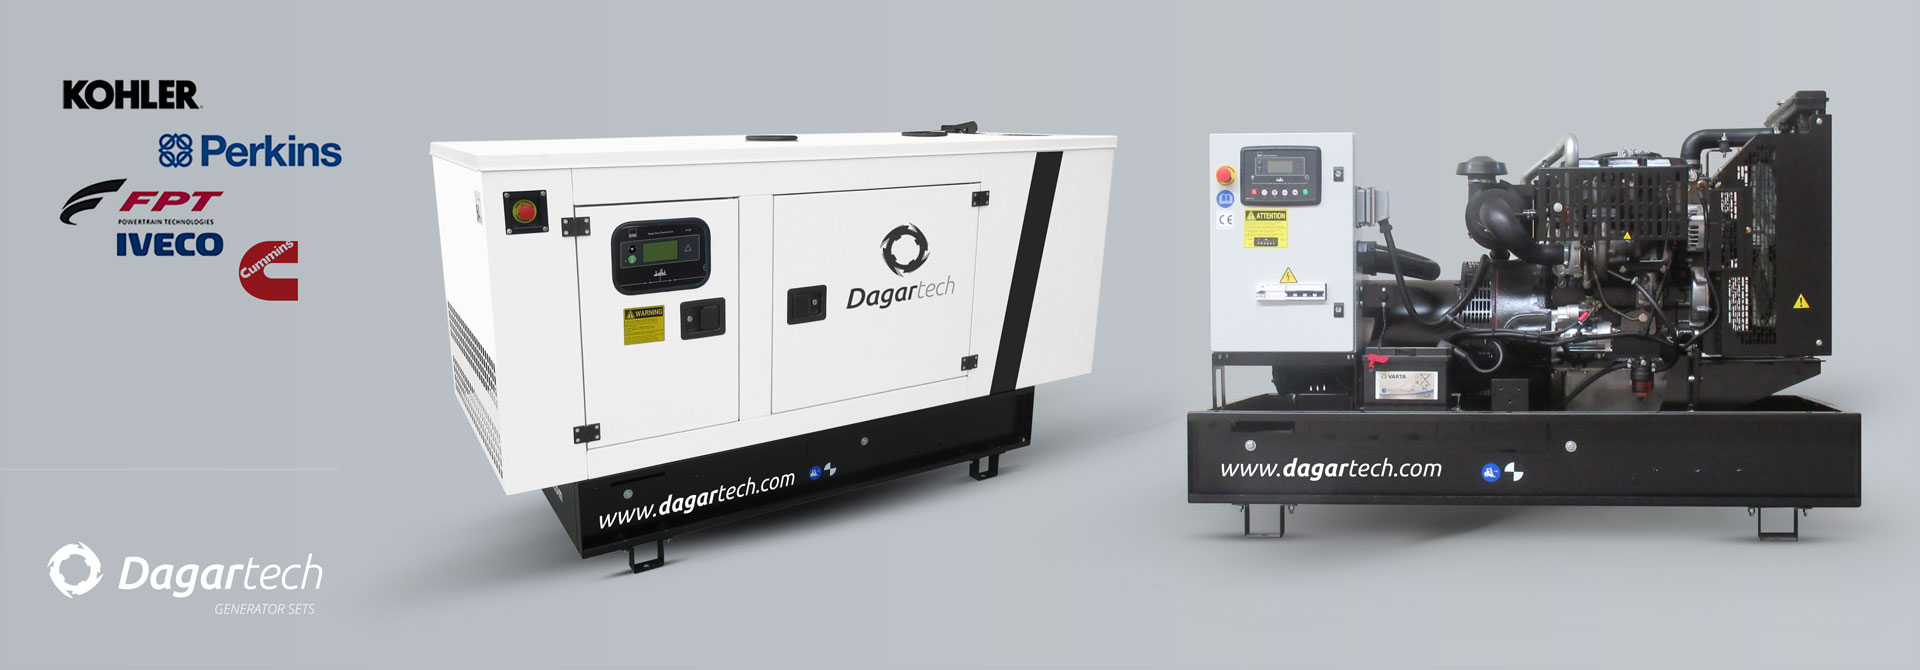 Balance generator sets for use in infrastructures with Kohler, Perkins, Iveco, Cummins, Doosan or Volvo water cooled engines